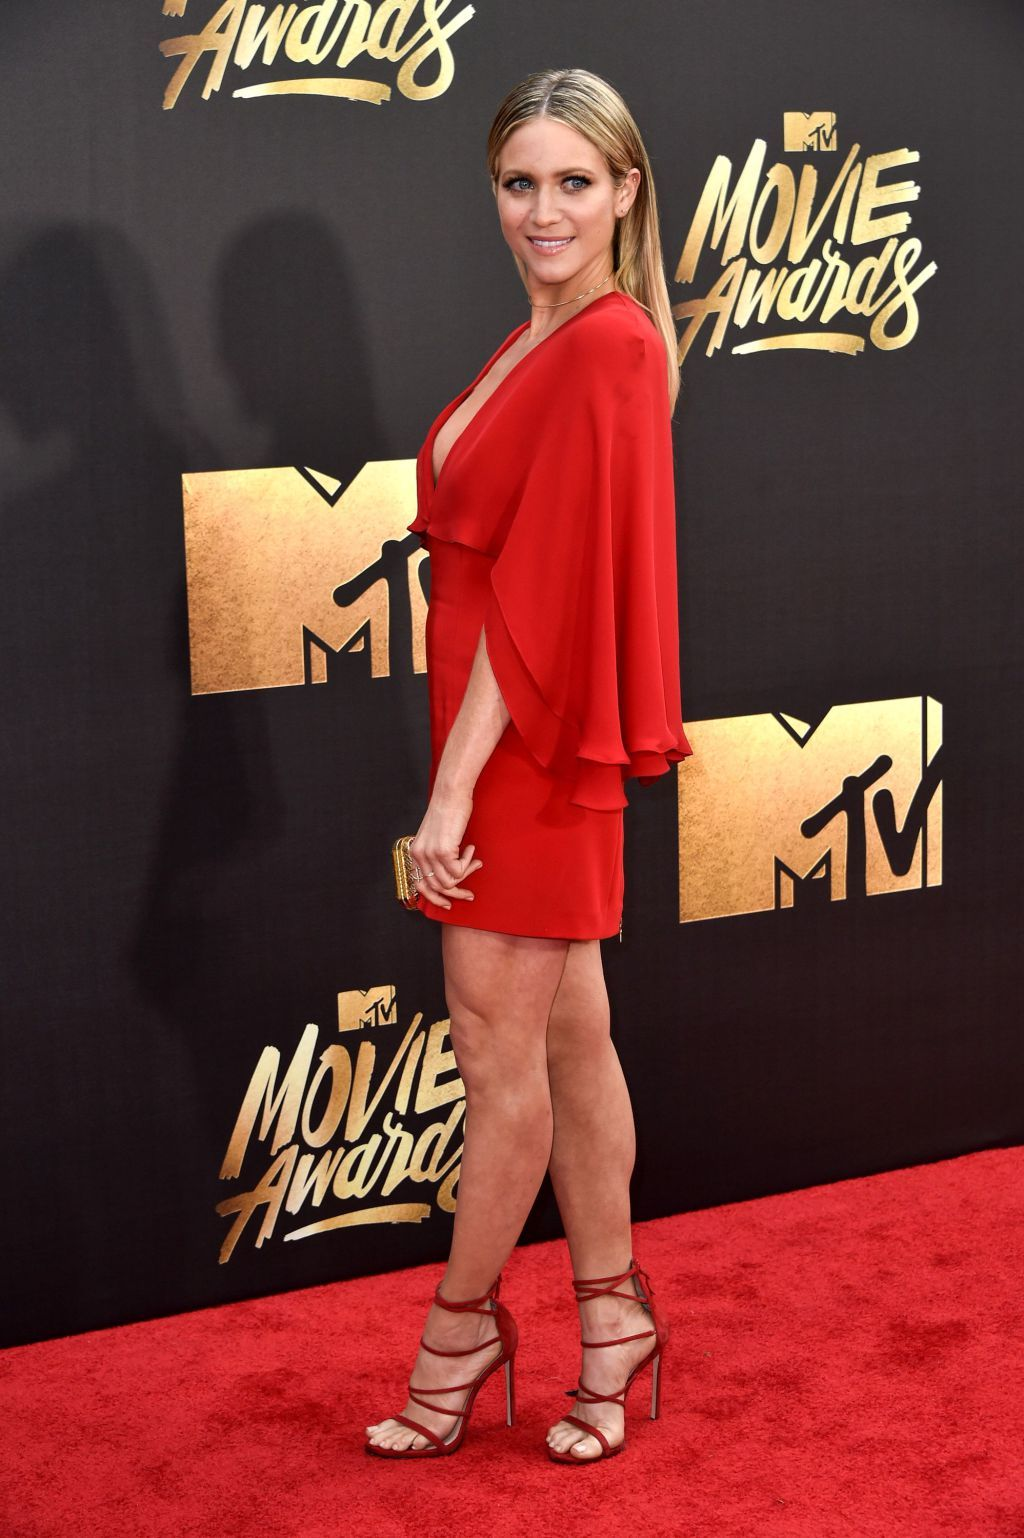 Brittany Snow in Haney at the MTV Movie Awards 2016 [Photo: Rob Latour]